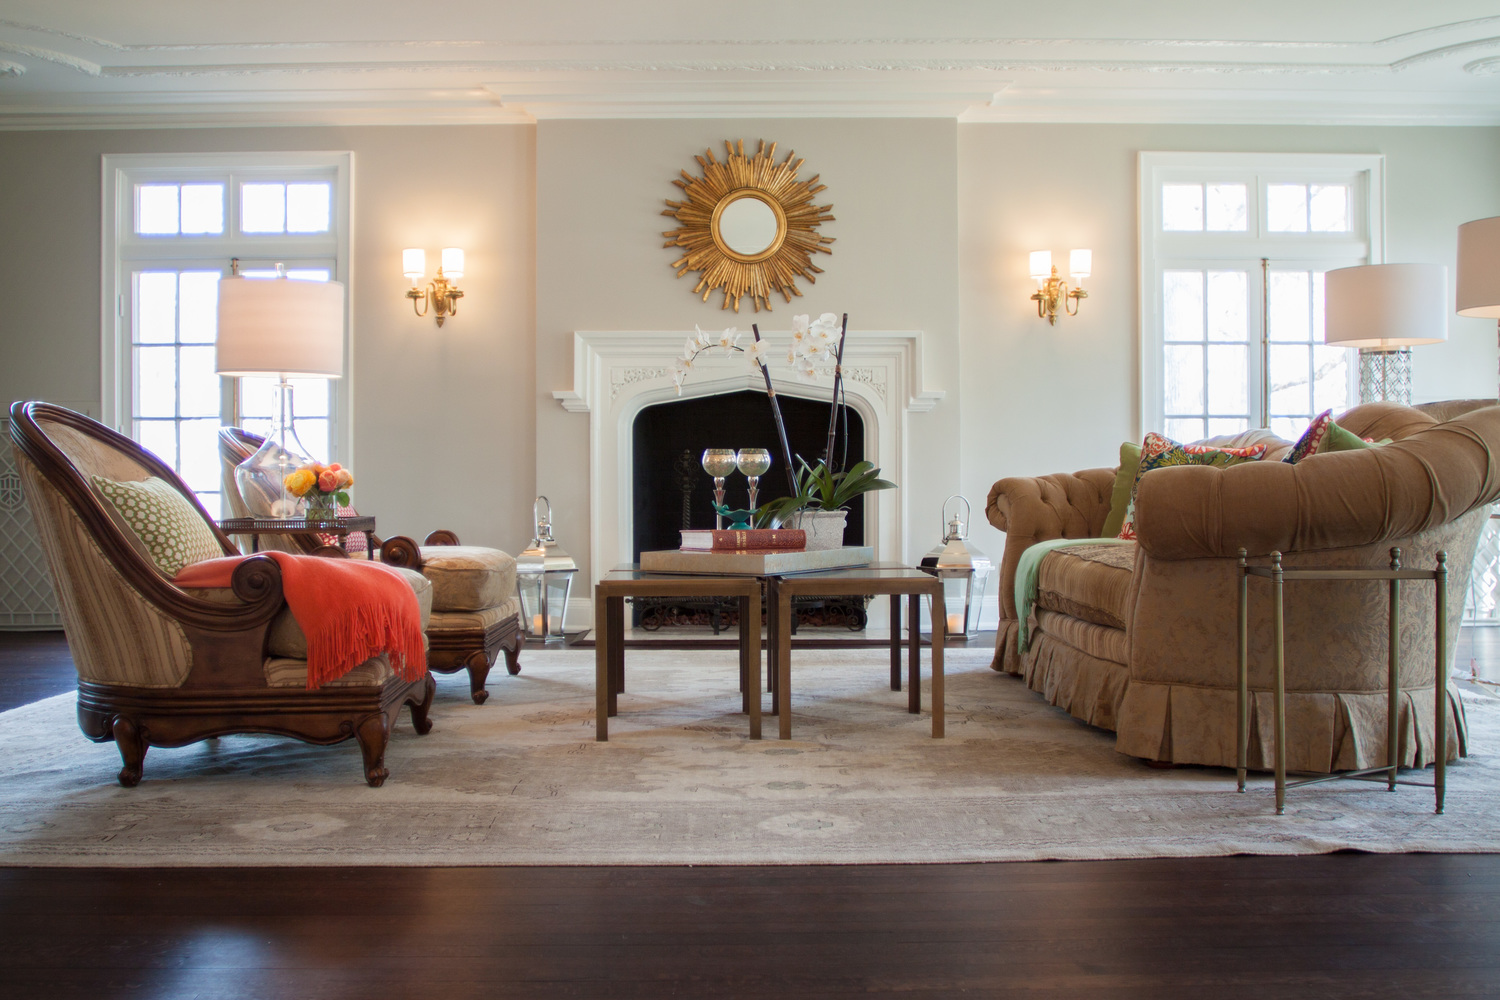 NEW LOOK FOR A TRADITIONAL TUDOR